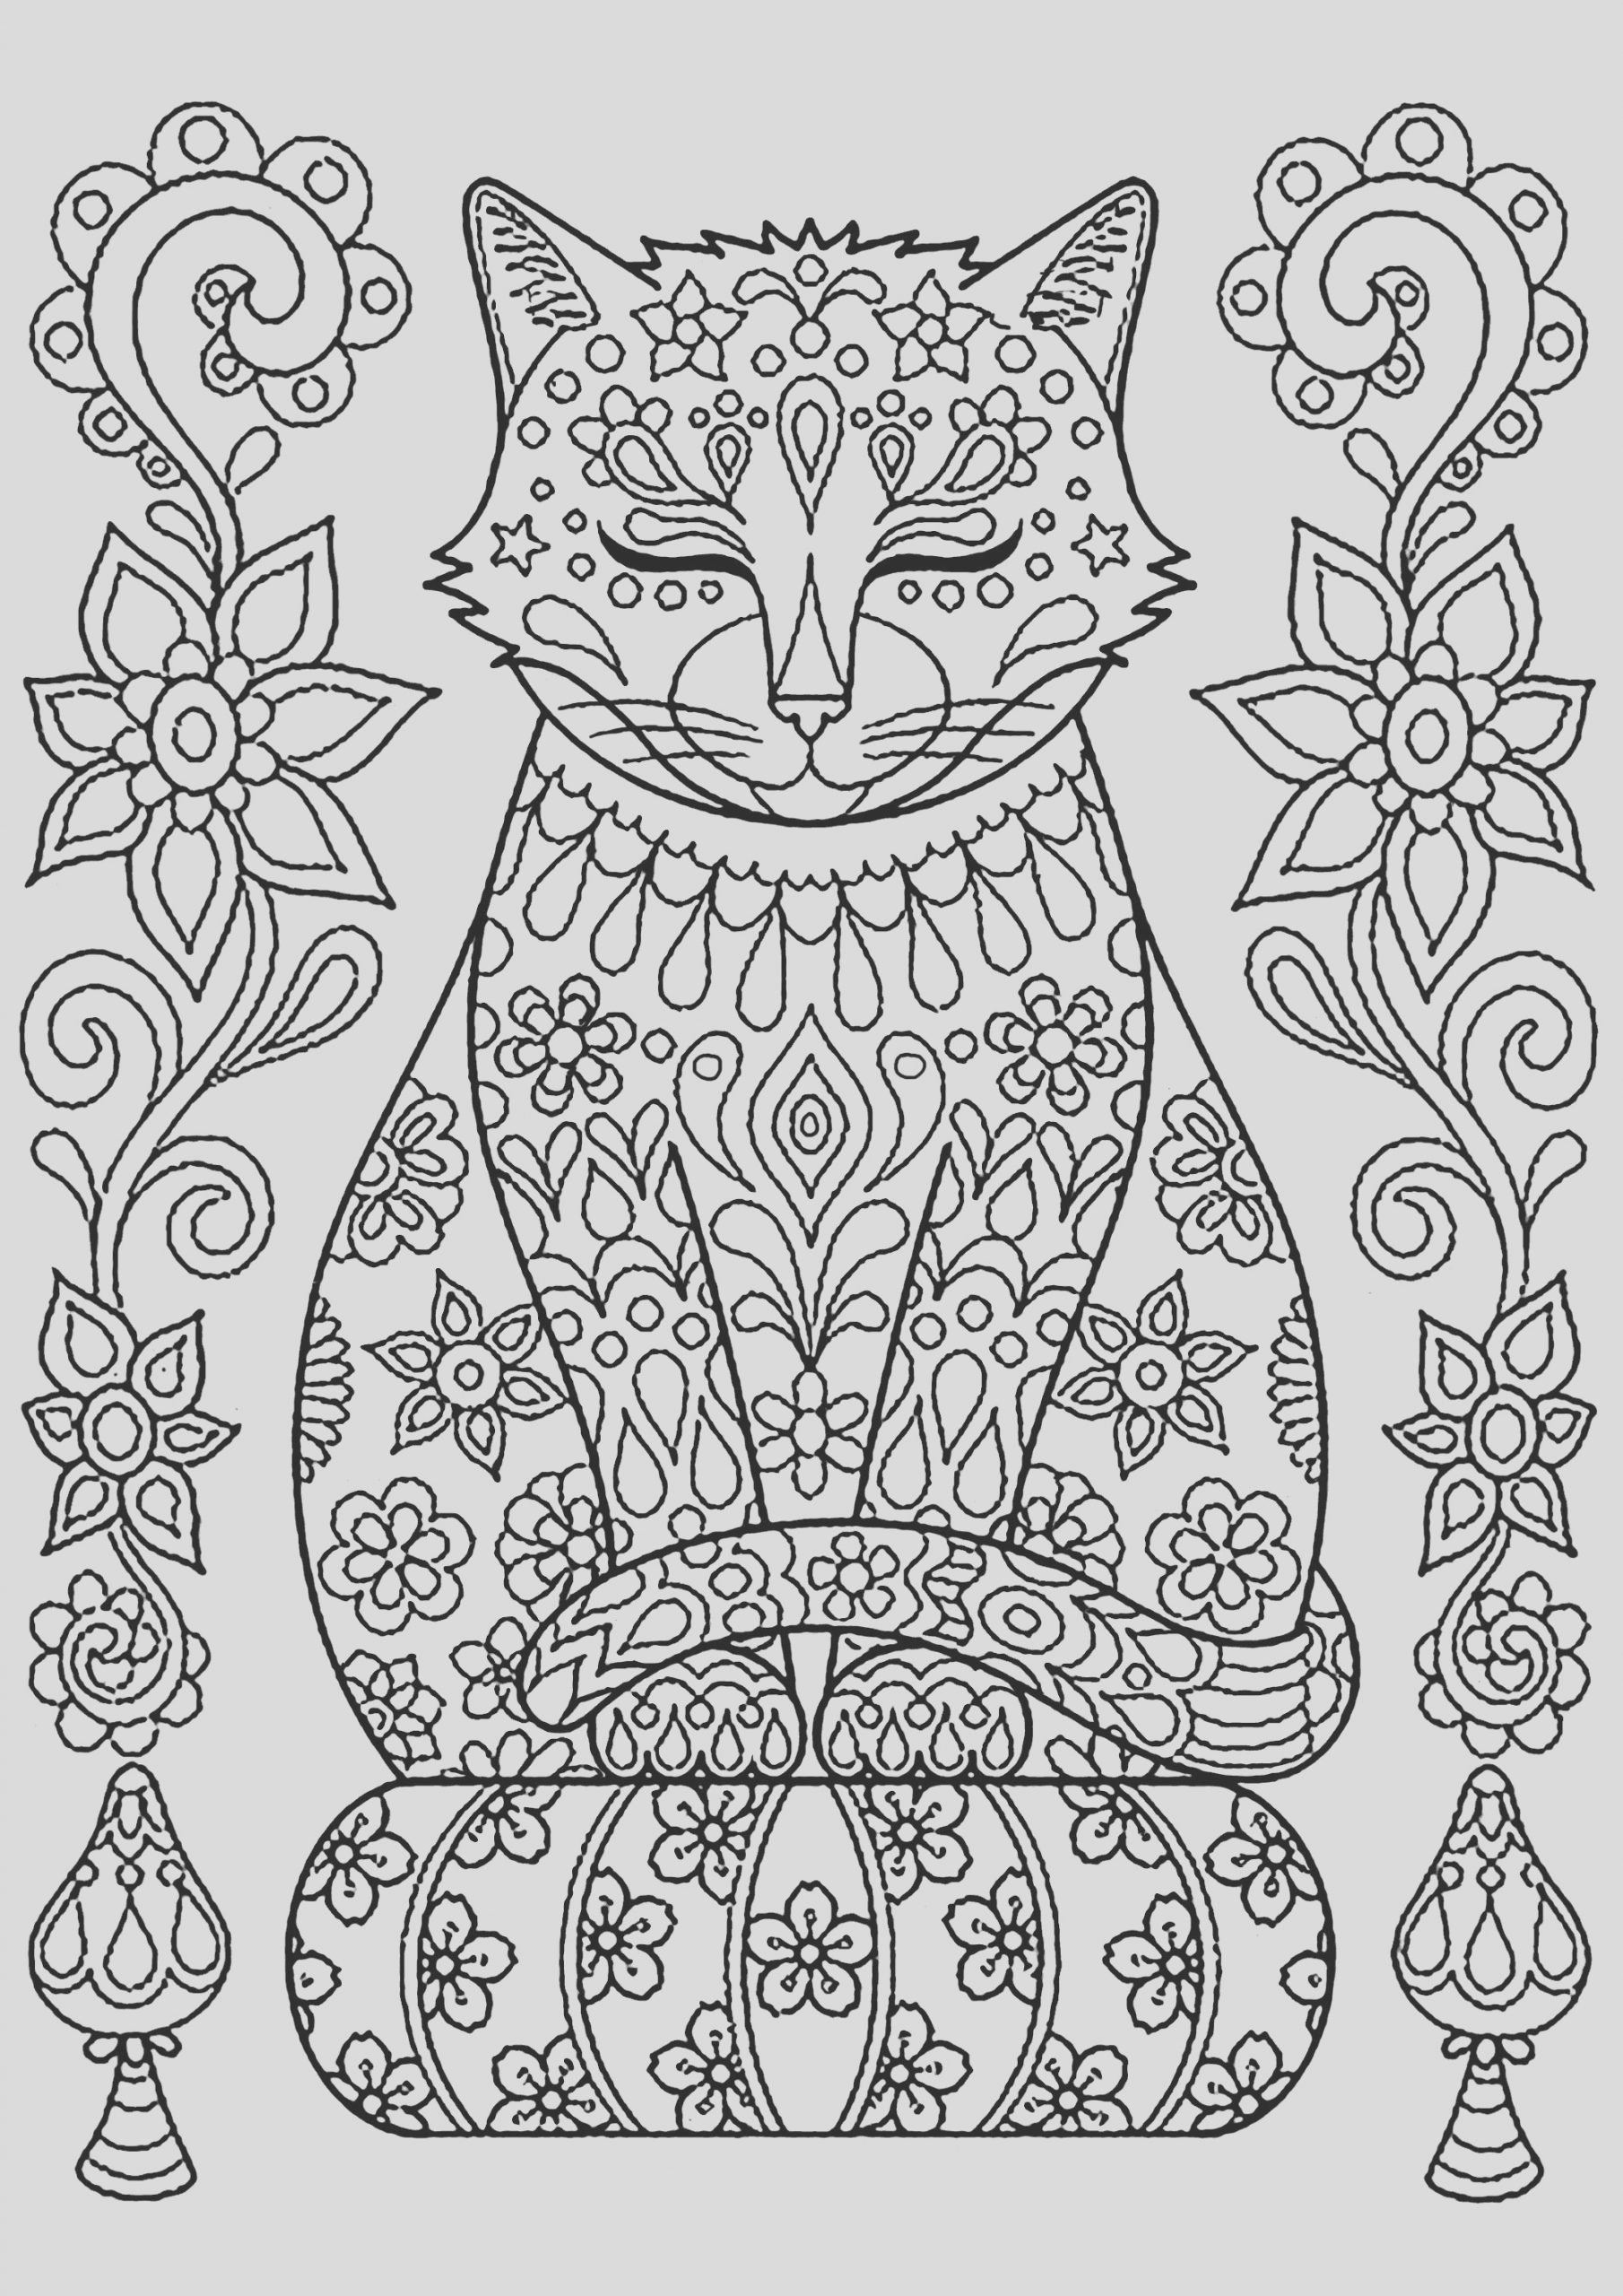 image=cats coloring cute cat on pillow with flowers 1